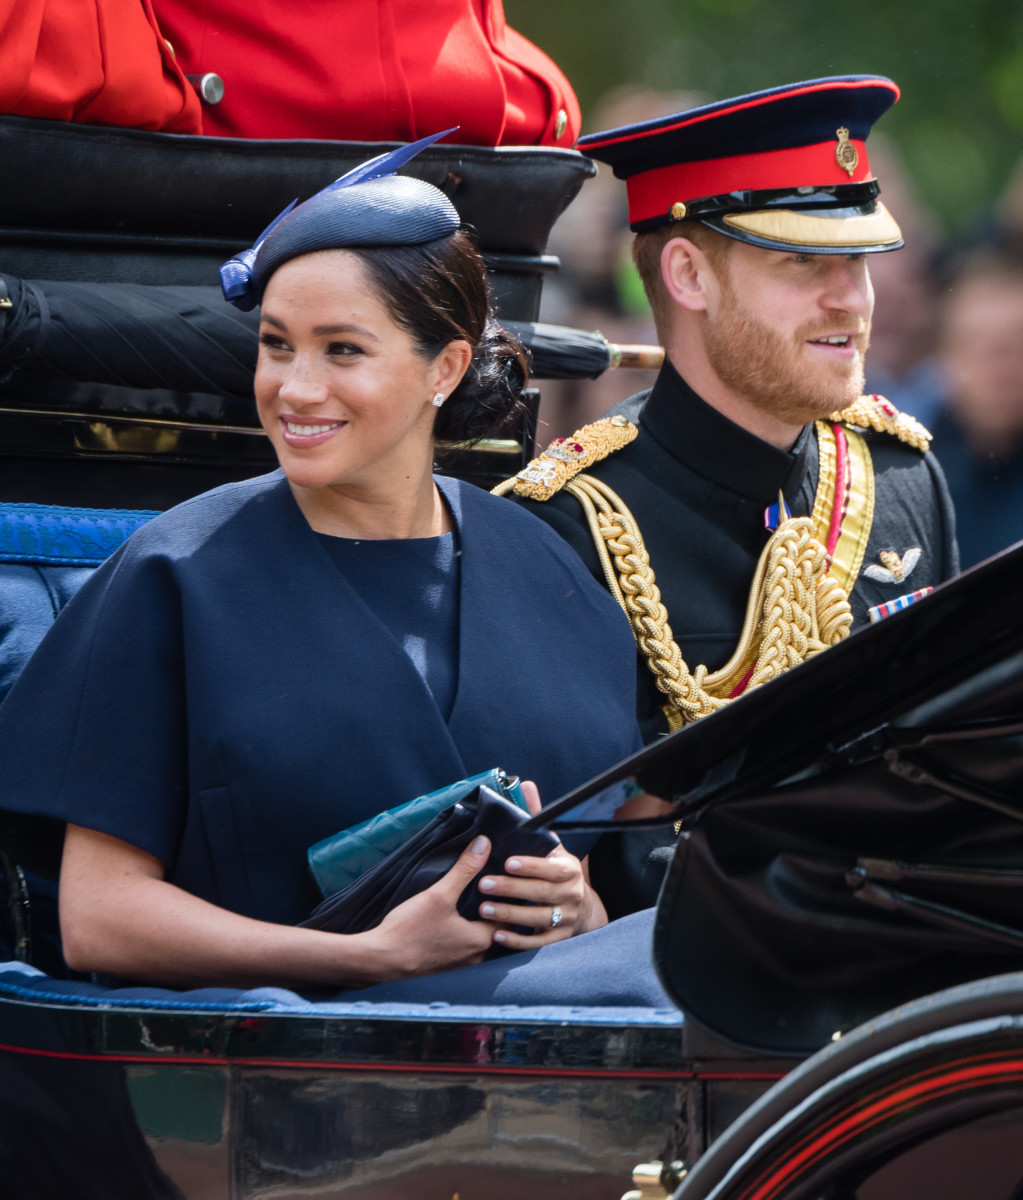 Prince Harry, Duke of Sussex and Meghan, Duchess of Sussex, in custom Givenchy attend the Trooping the Colour, the Queen's annual birthday parade, in London. Photo: Samir Hussein/WireImage